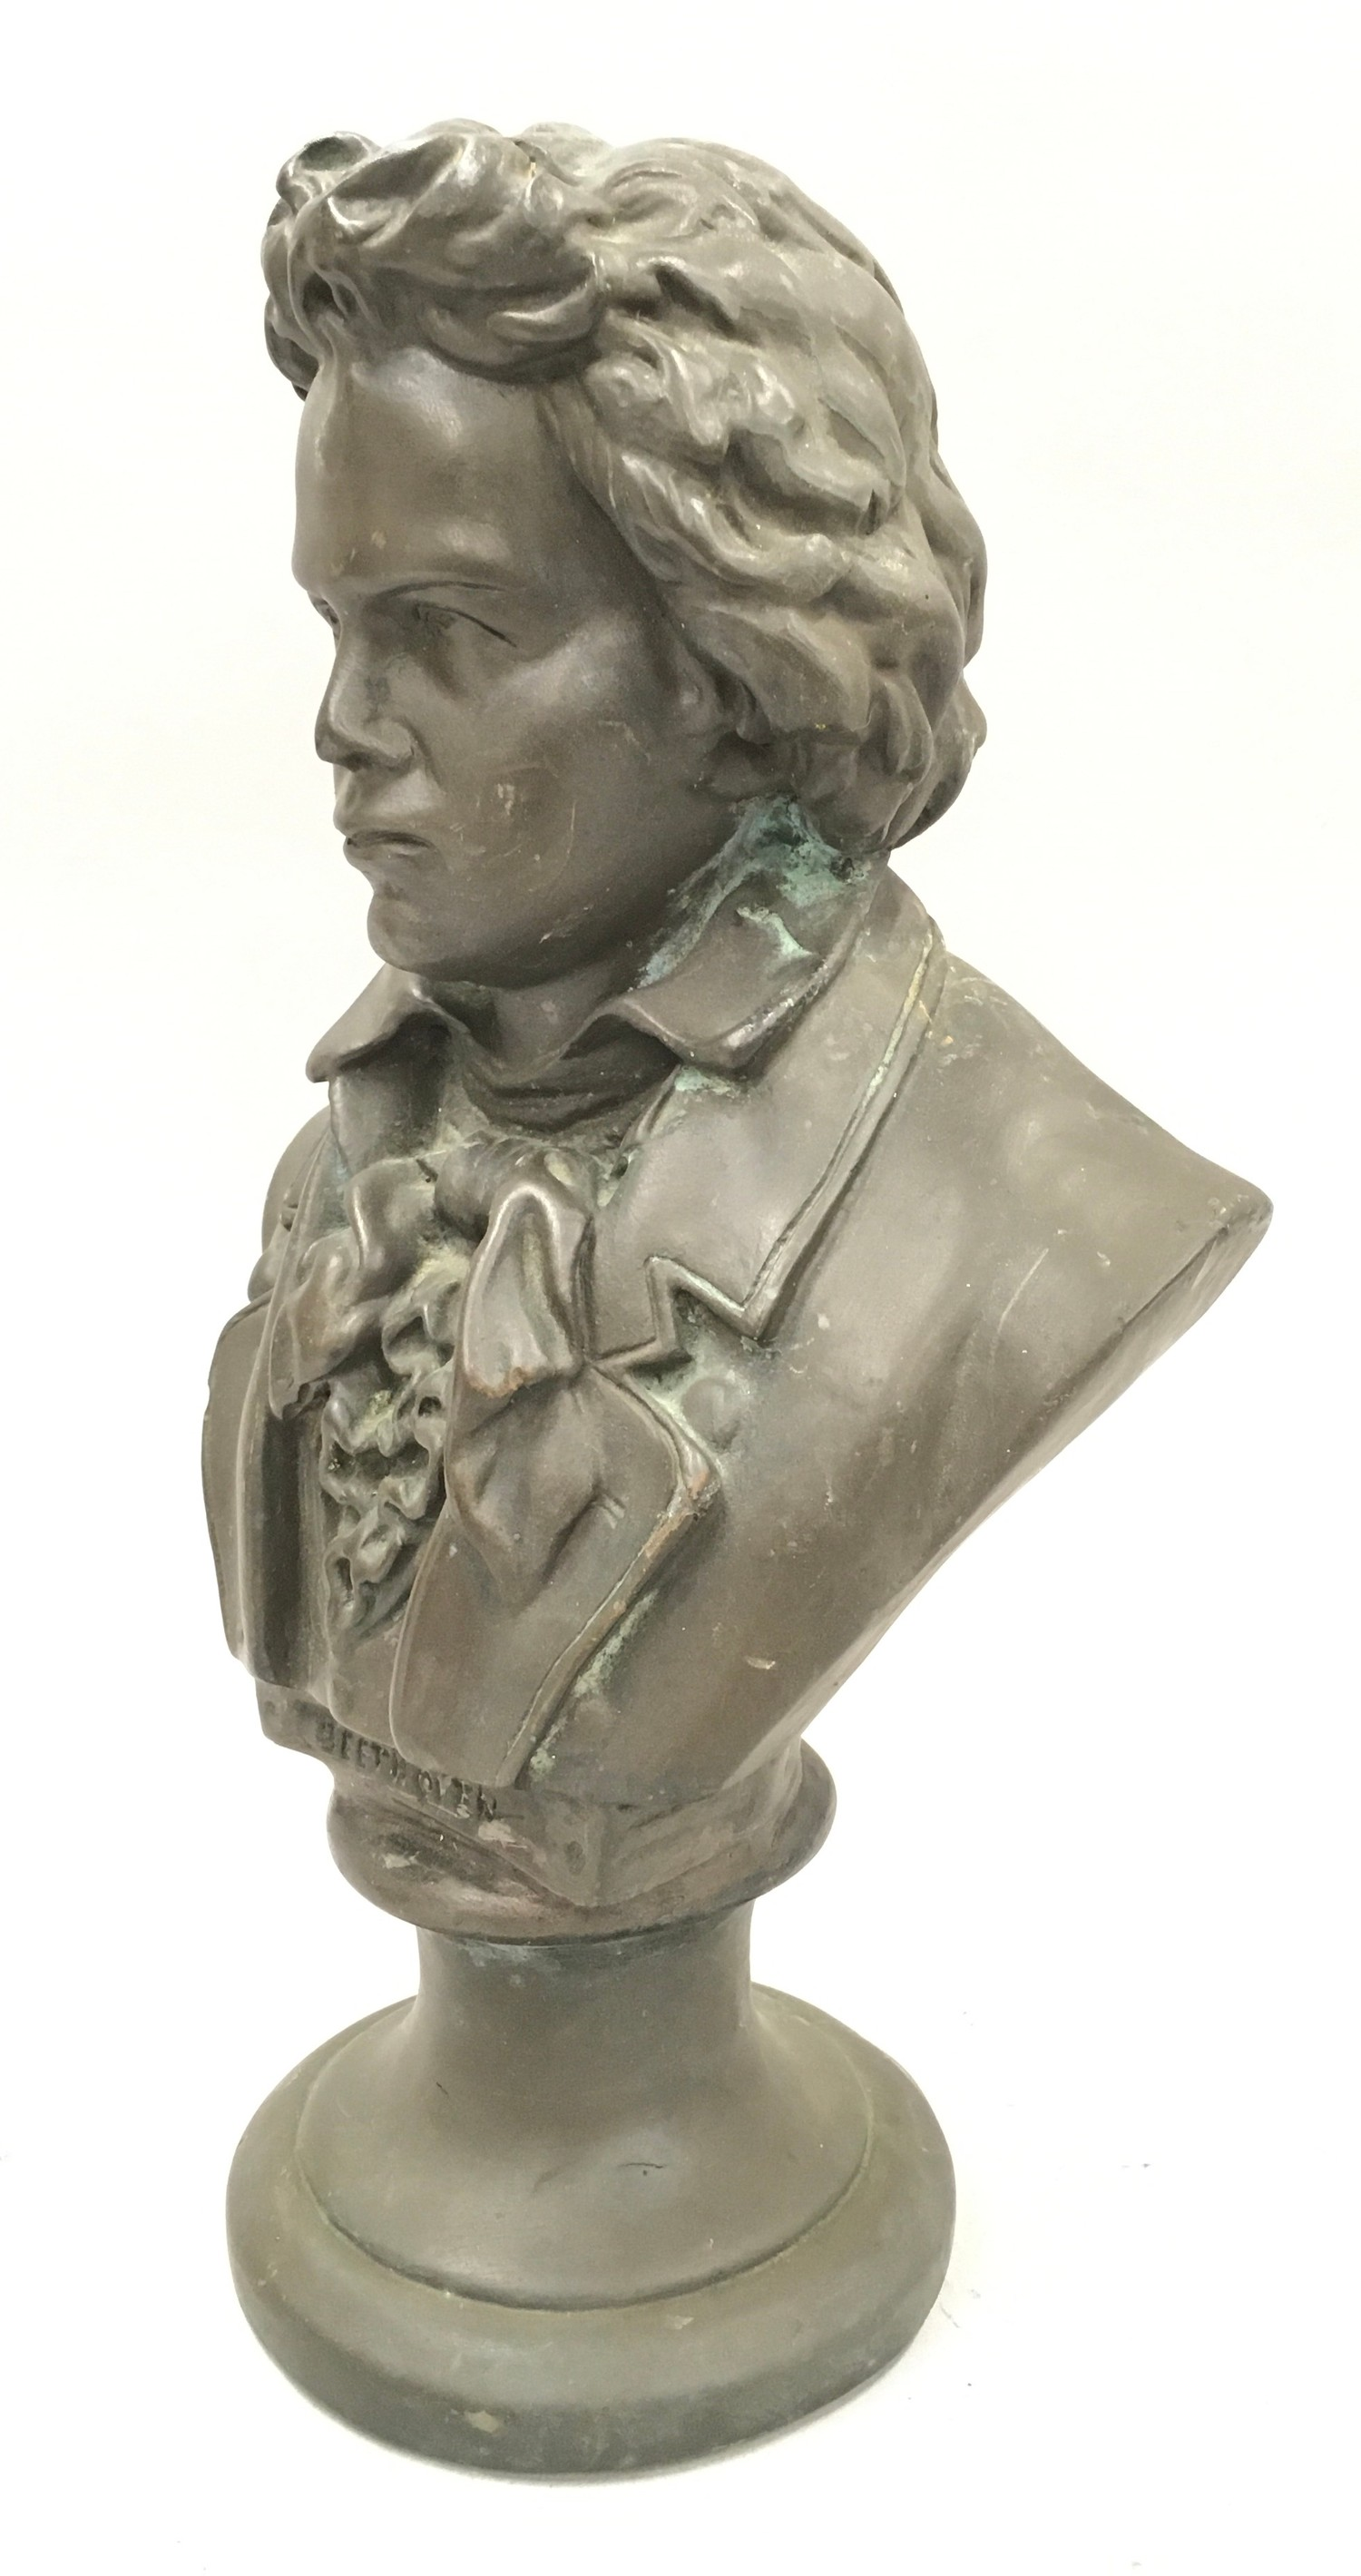 Cast metal bust of Beethoven 33cm tall - Image 4 of 4